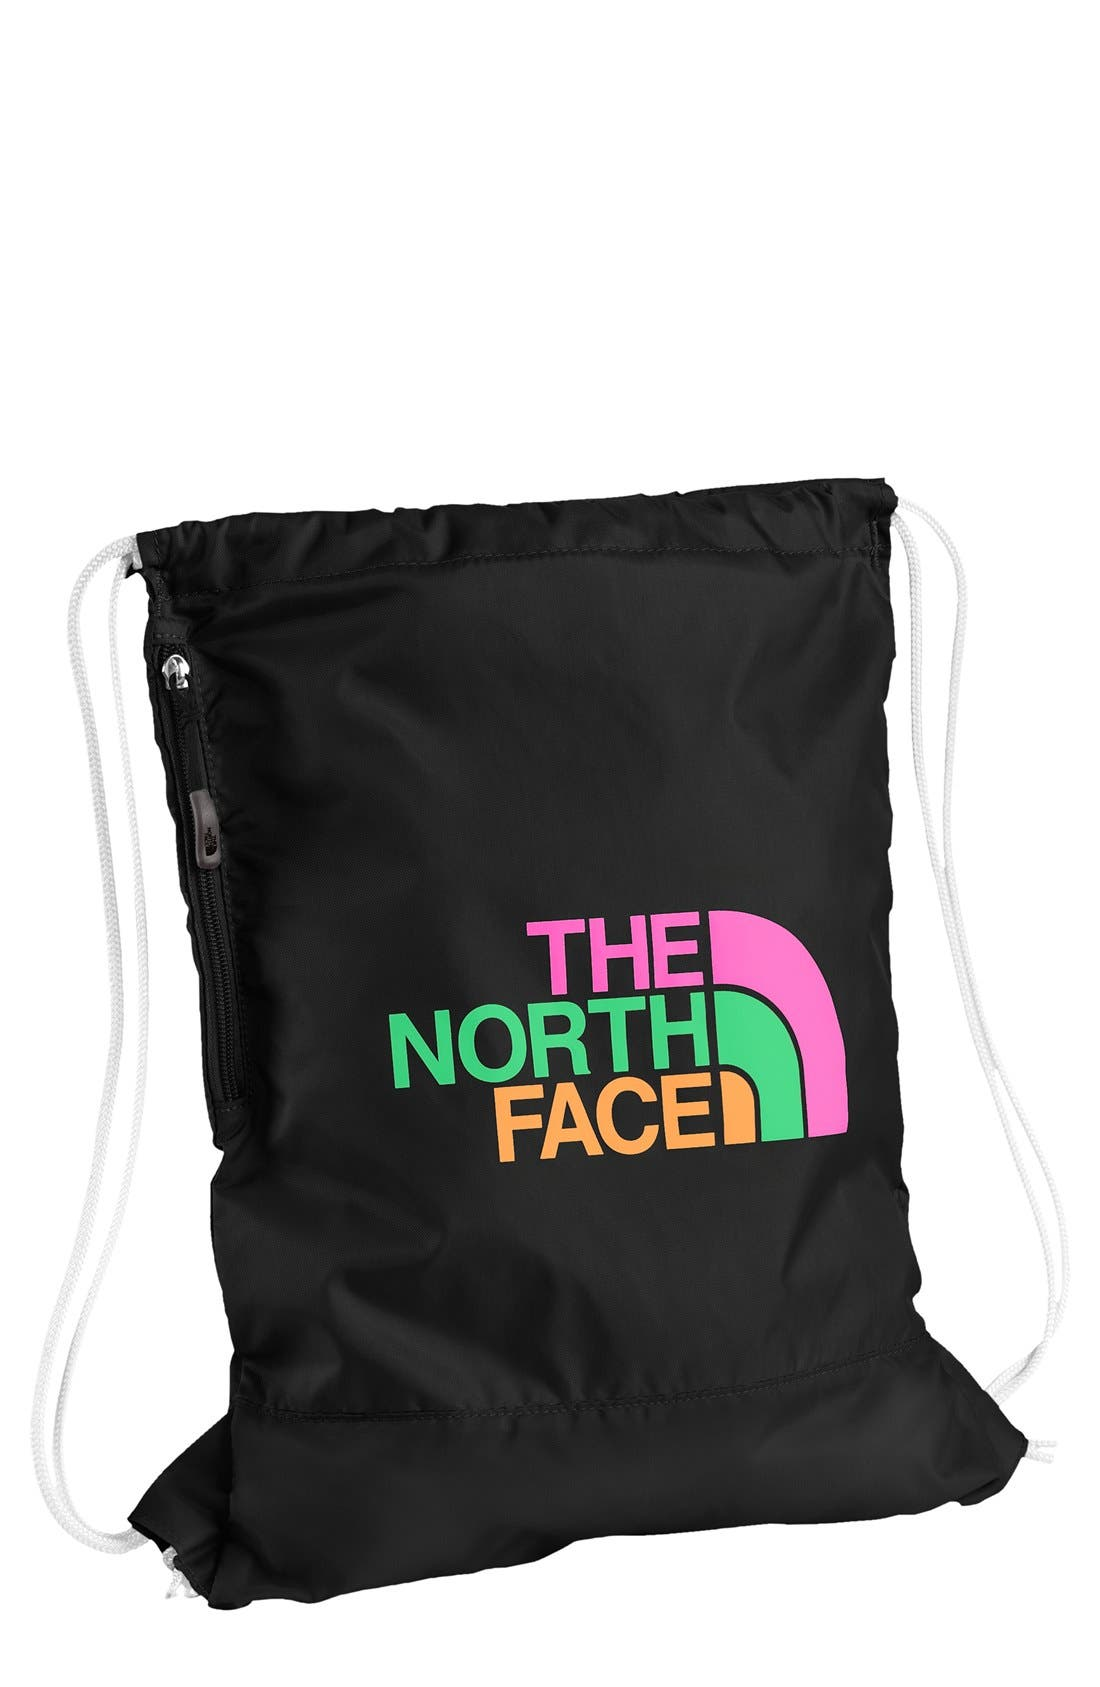 Alternate Image 1 Selected - The North Face 'Sack Pack' Drawstring Back